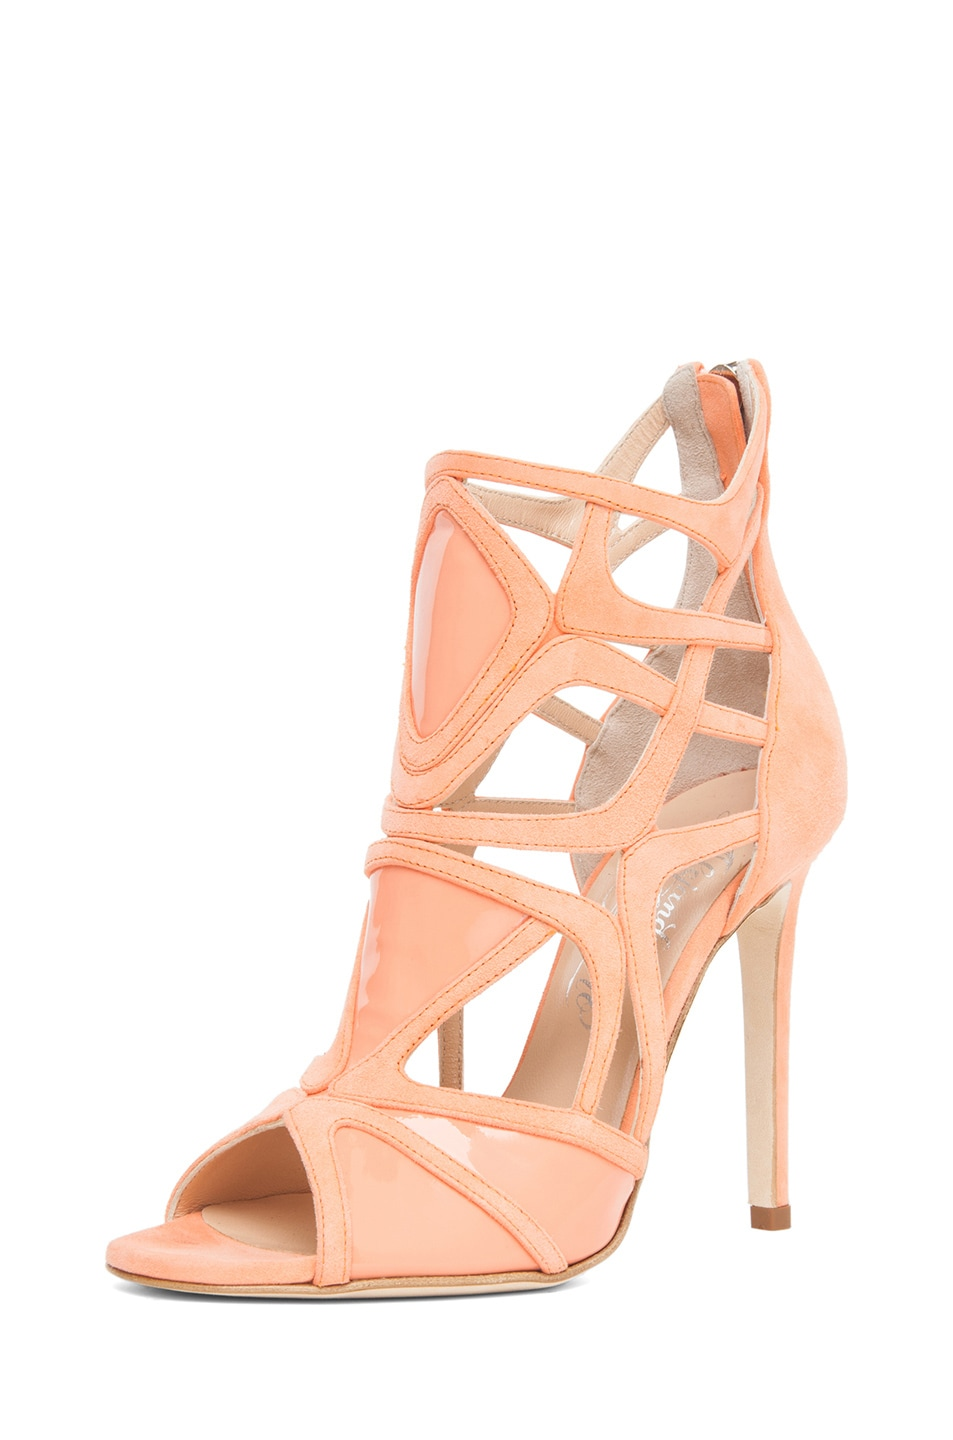 Image 2 of Alejandro Ingelmo Odessy Geometric Open Toe Bootie in Coral